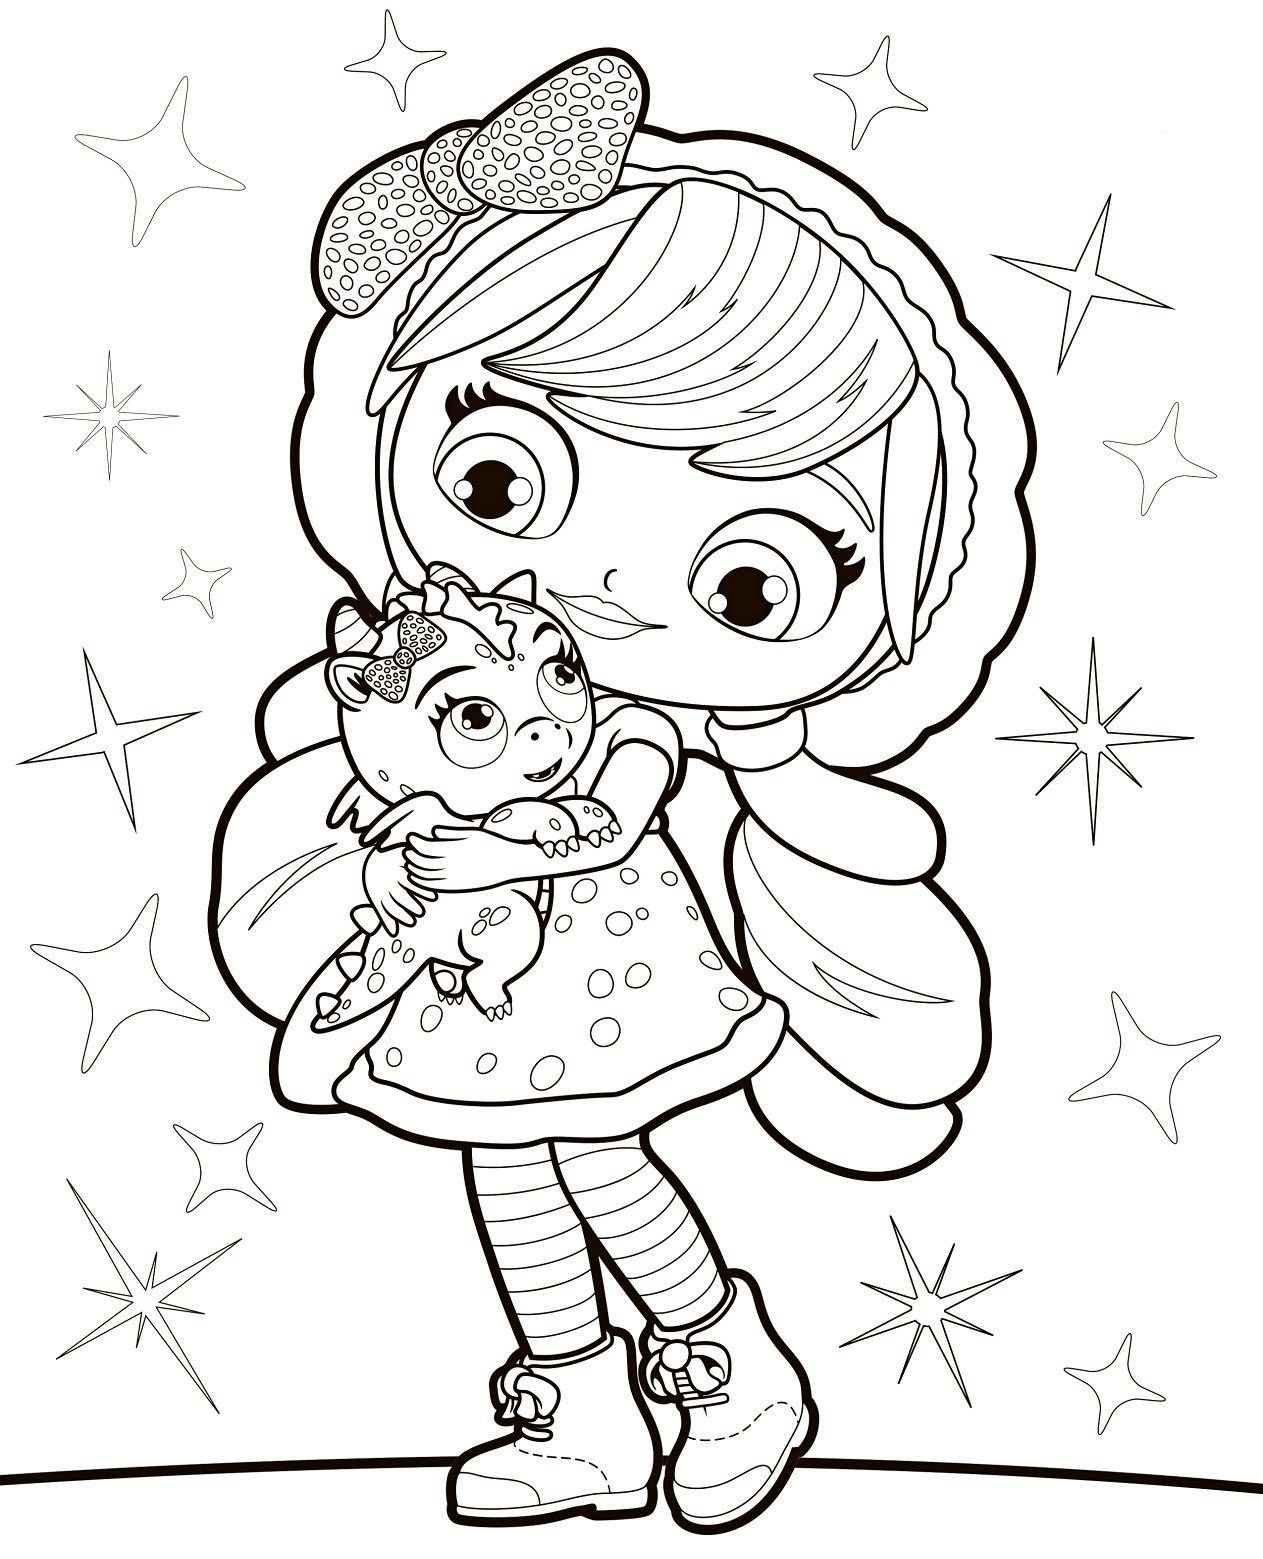 Little Charmers Drawing Pictures Little Charmers Nick Jr Coloring Pages Coloring Pages